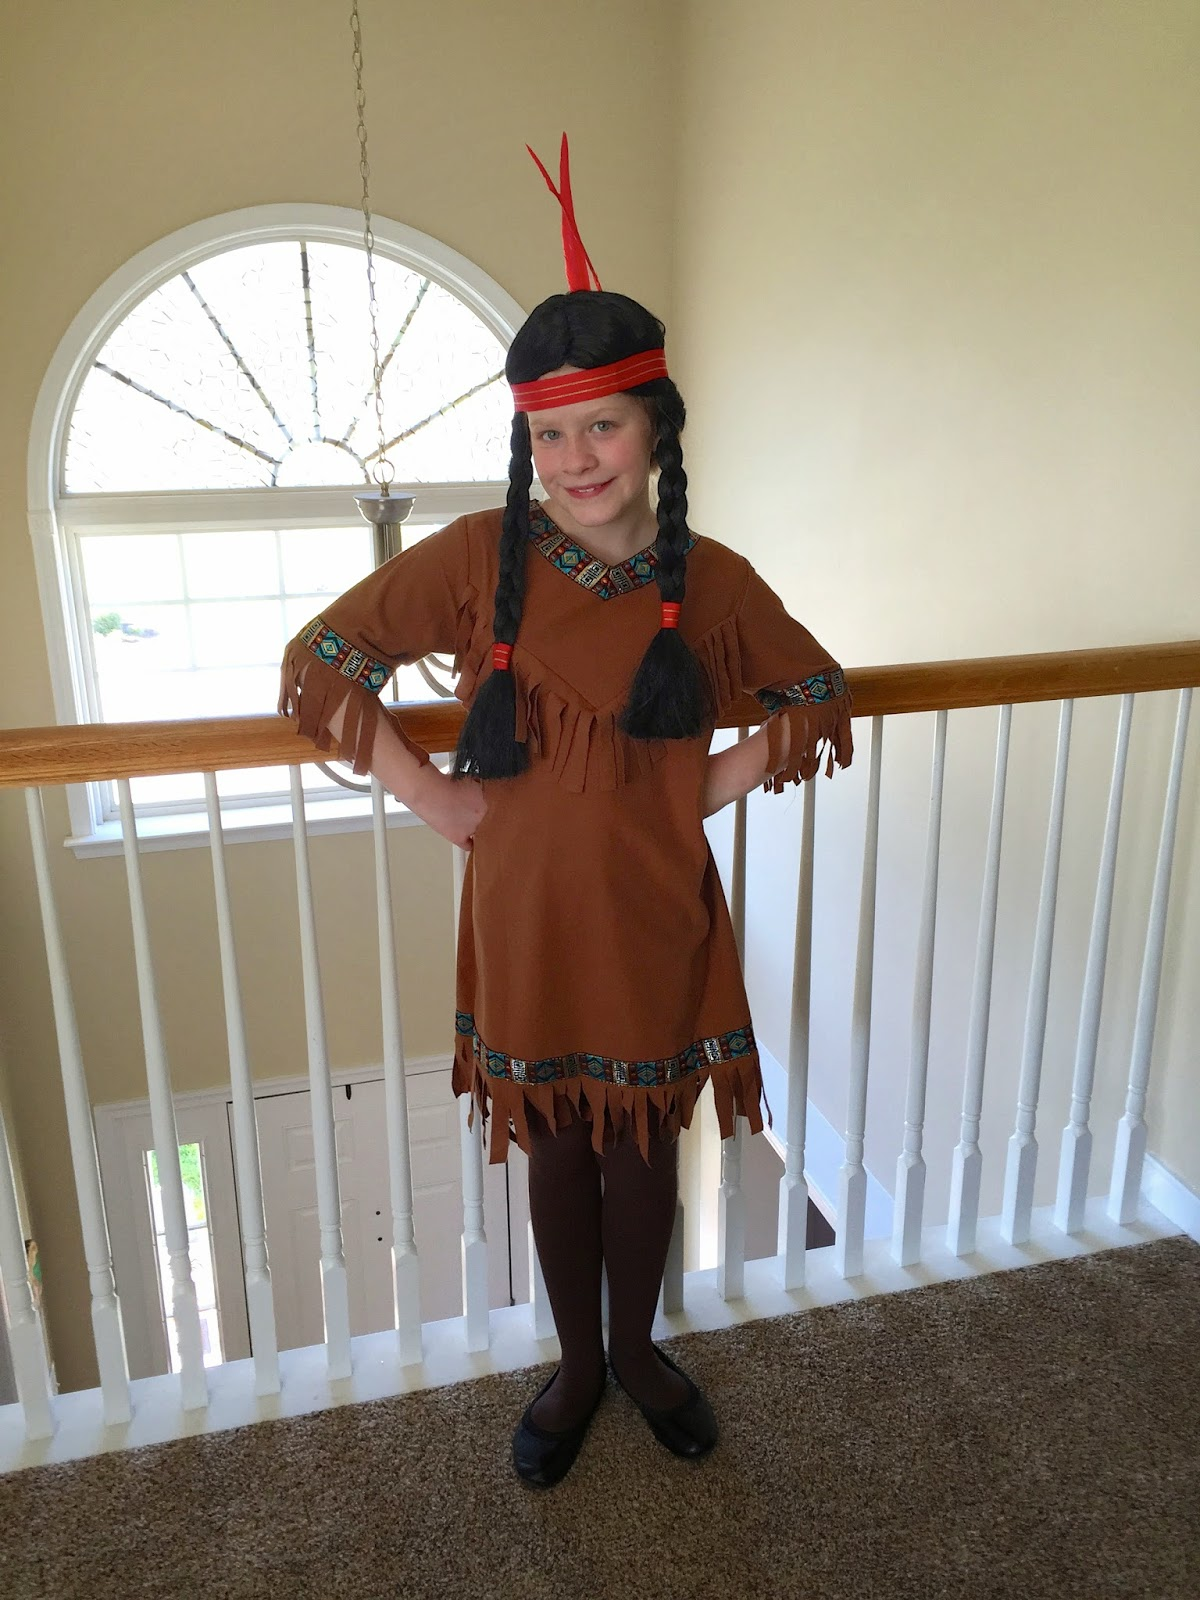 Welcome to the Krazy Kingdom: Peter Pan Costumes - Tiger Lily